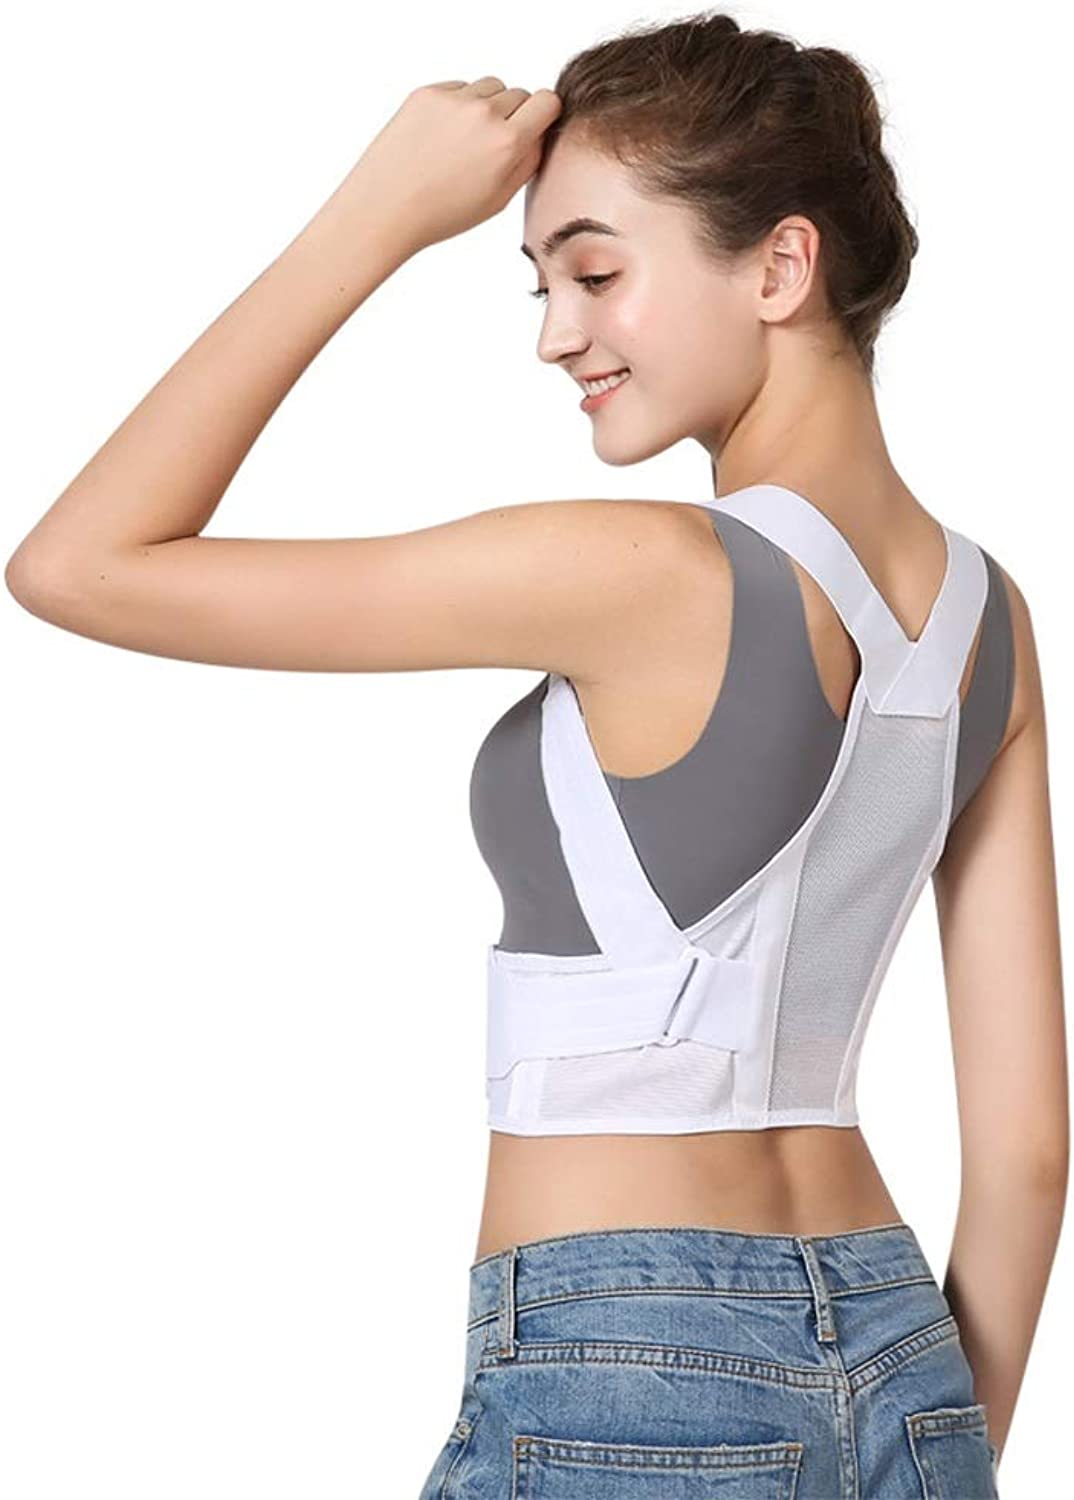 Nosterappou Correction belt, correct male and female adult strap open shoulder corrector, antibreasted back corrective clothing, open shoulder chest, cross solid, waist support, closefitting breatha